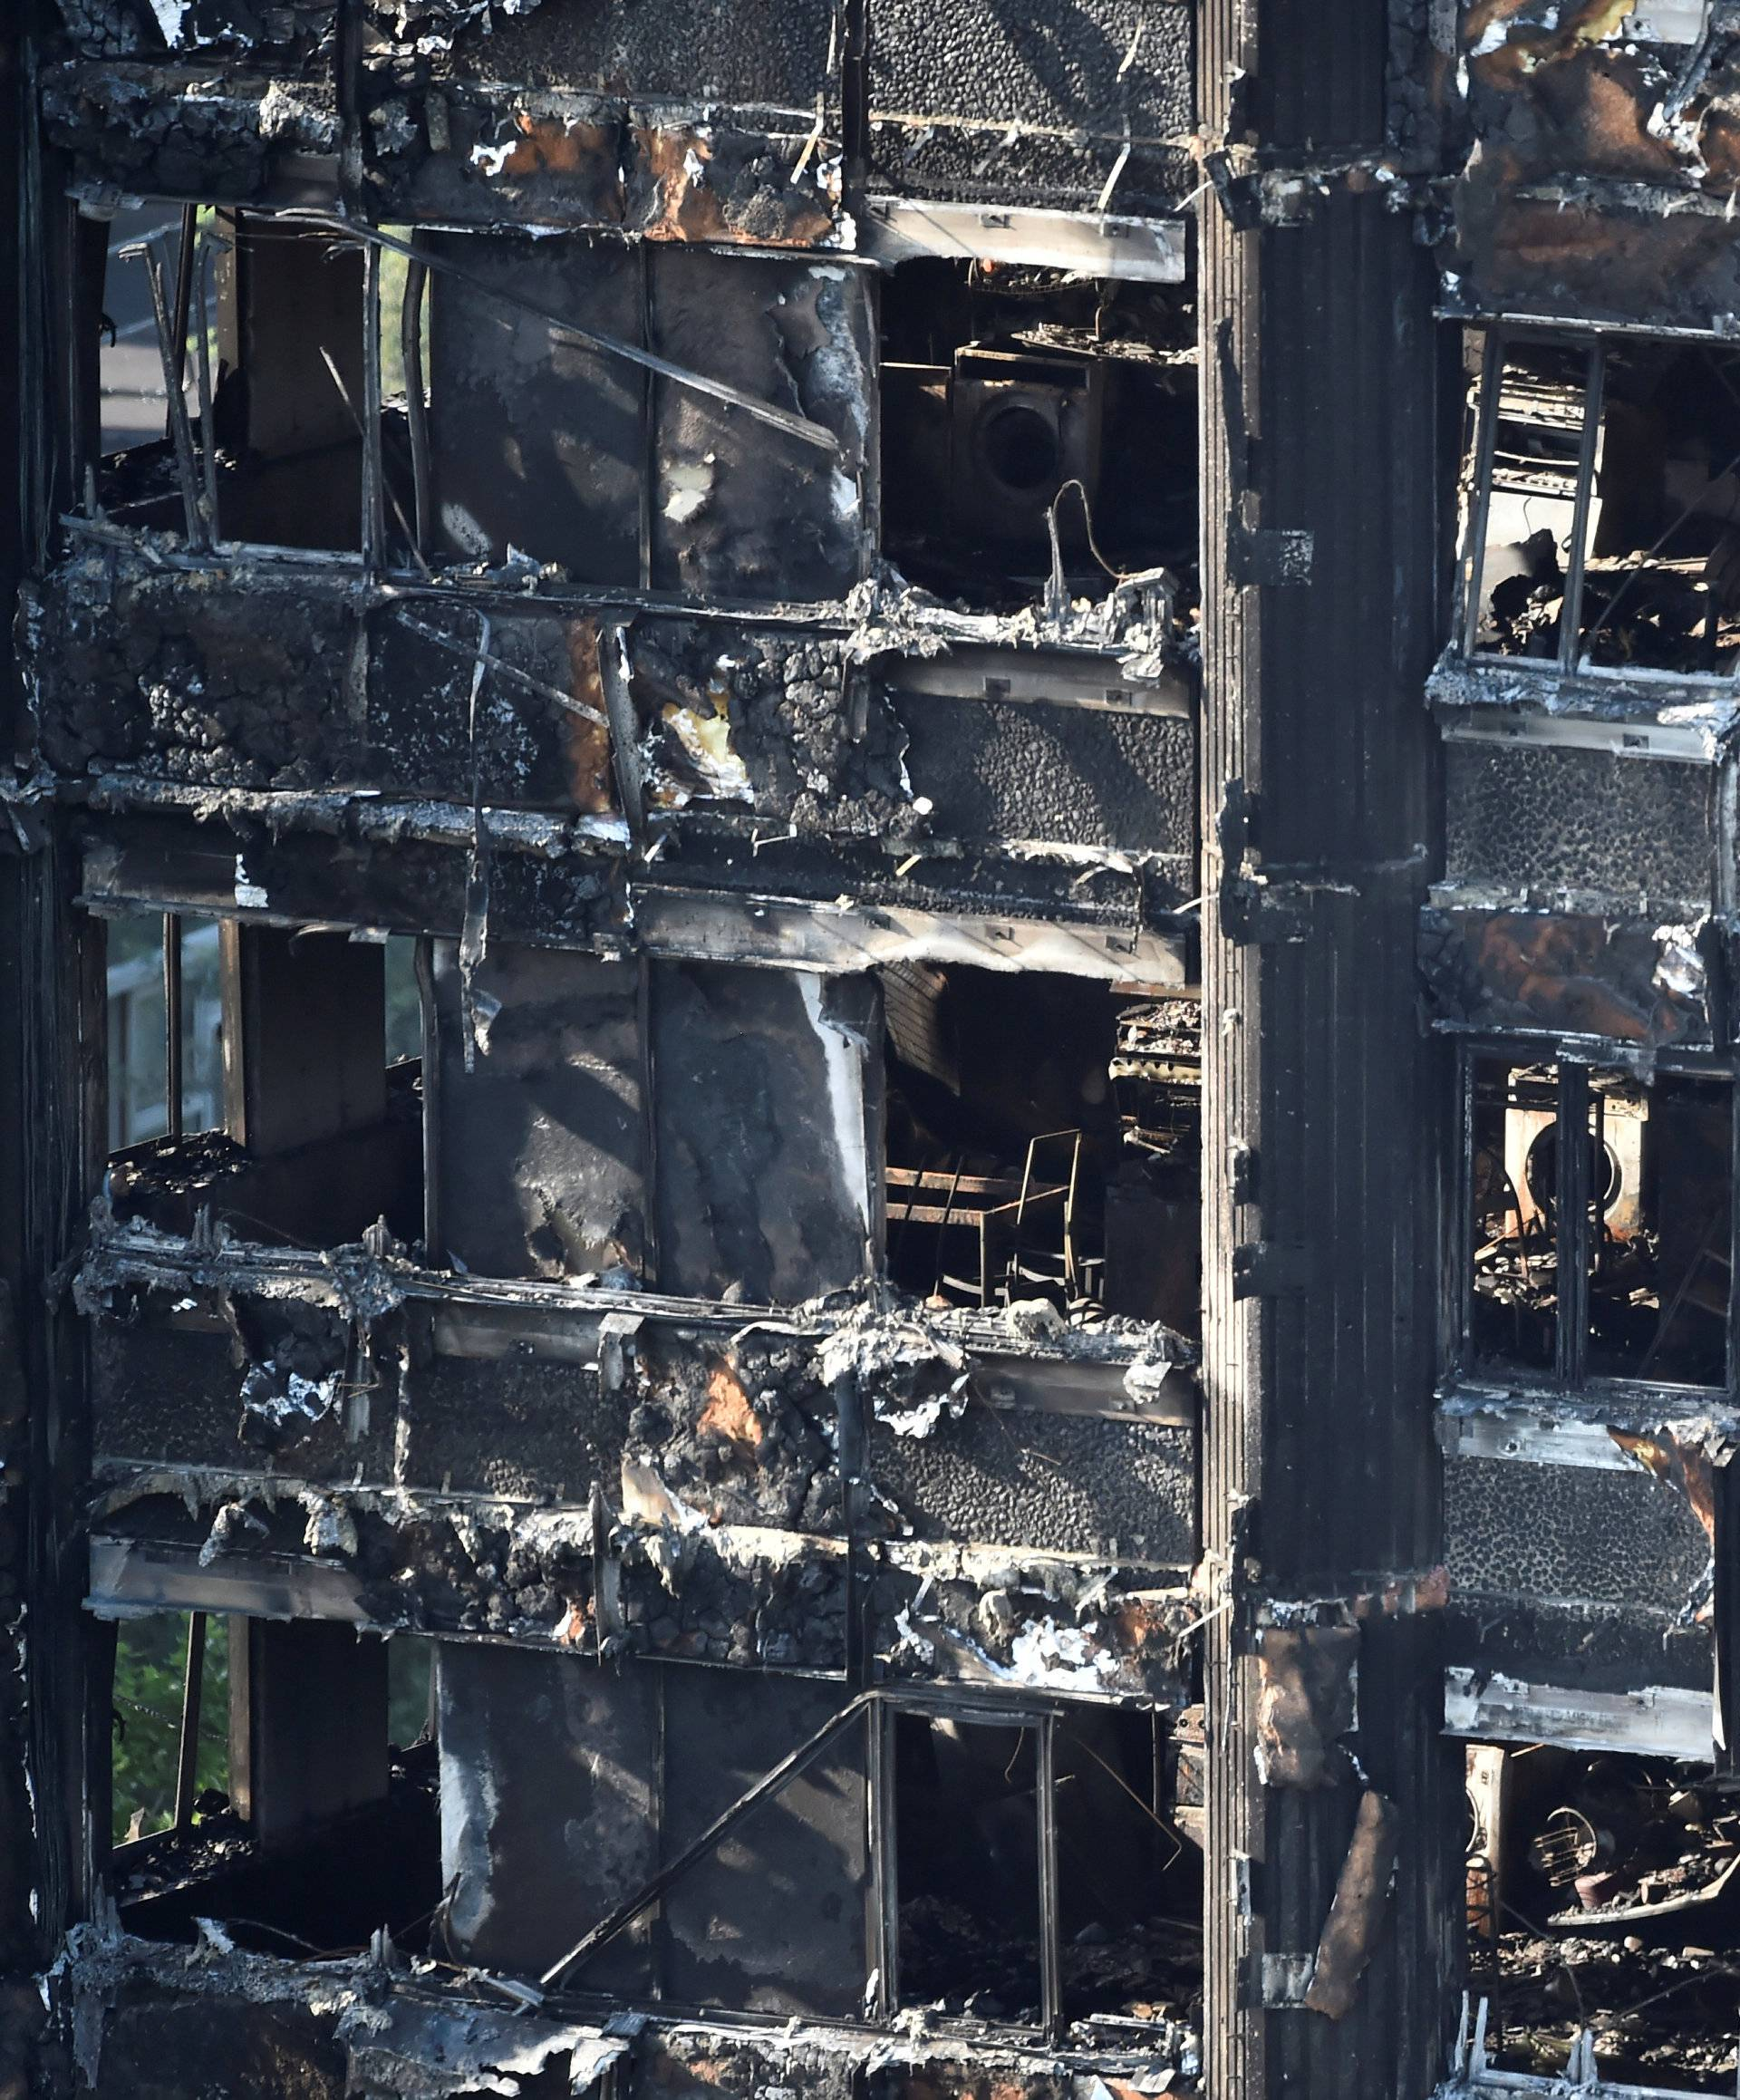 Extensive damage is seen to the Grenfell Tower block which was destroyed in a disastrous fire, in north Kensington, West London